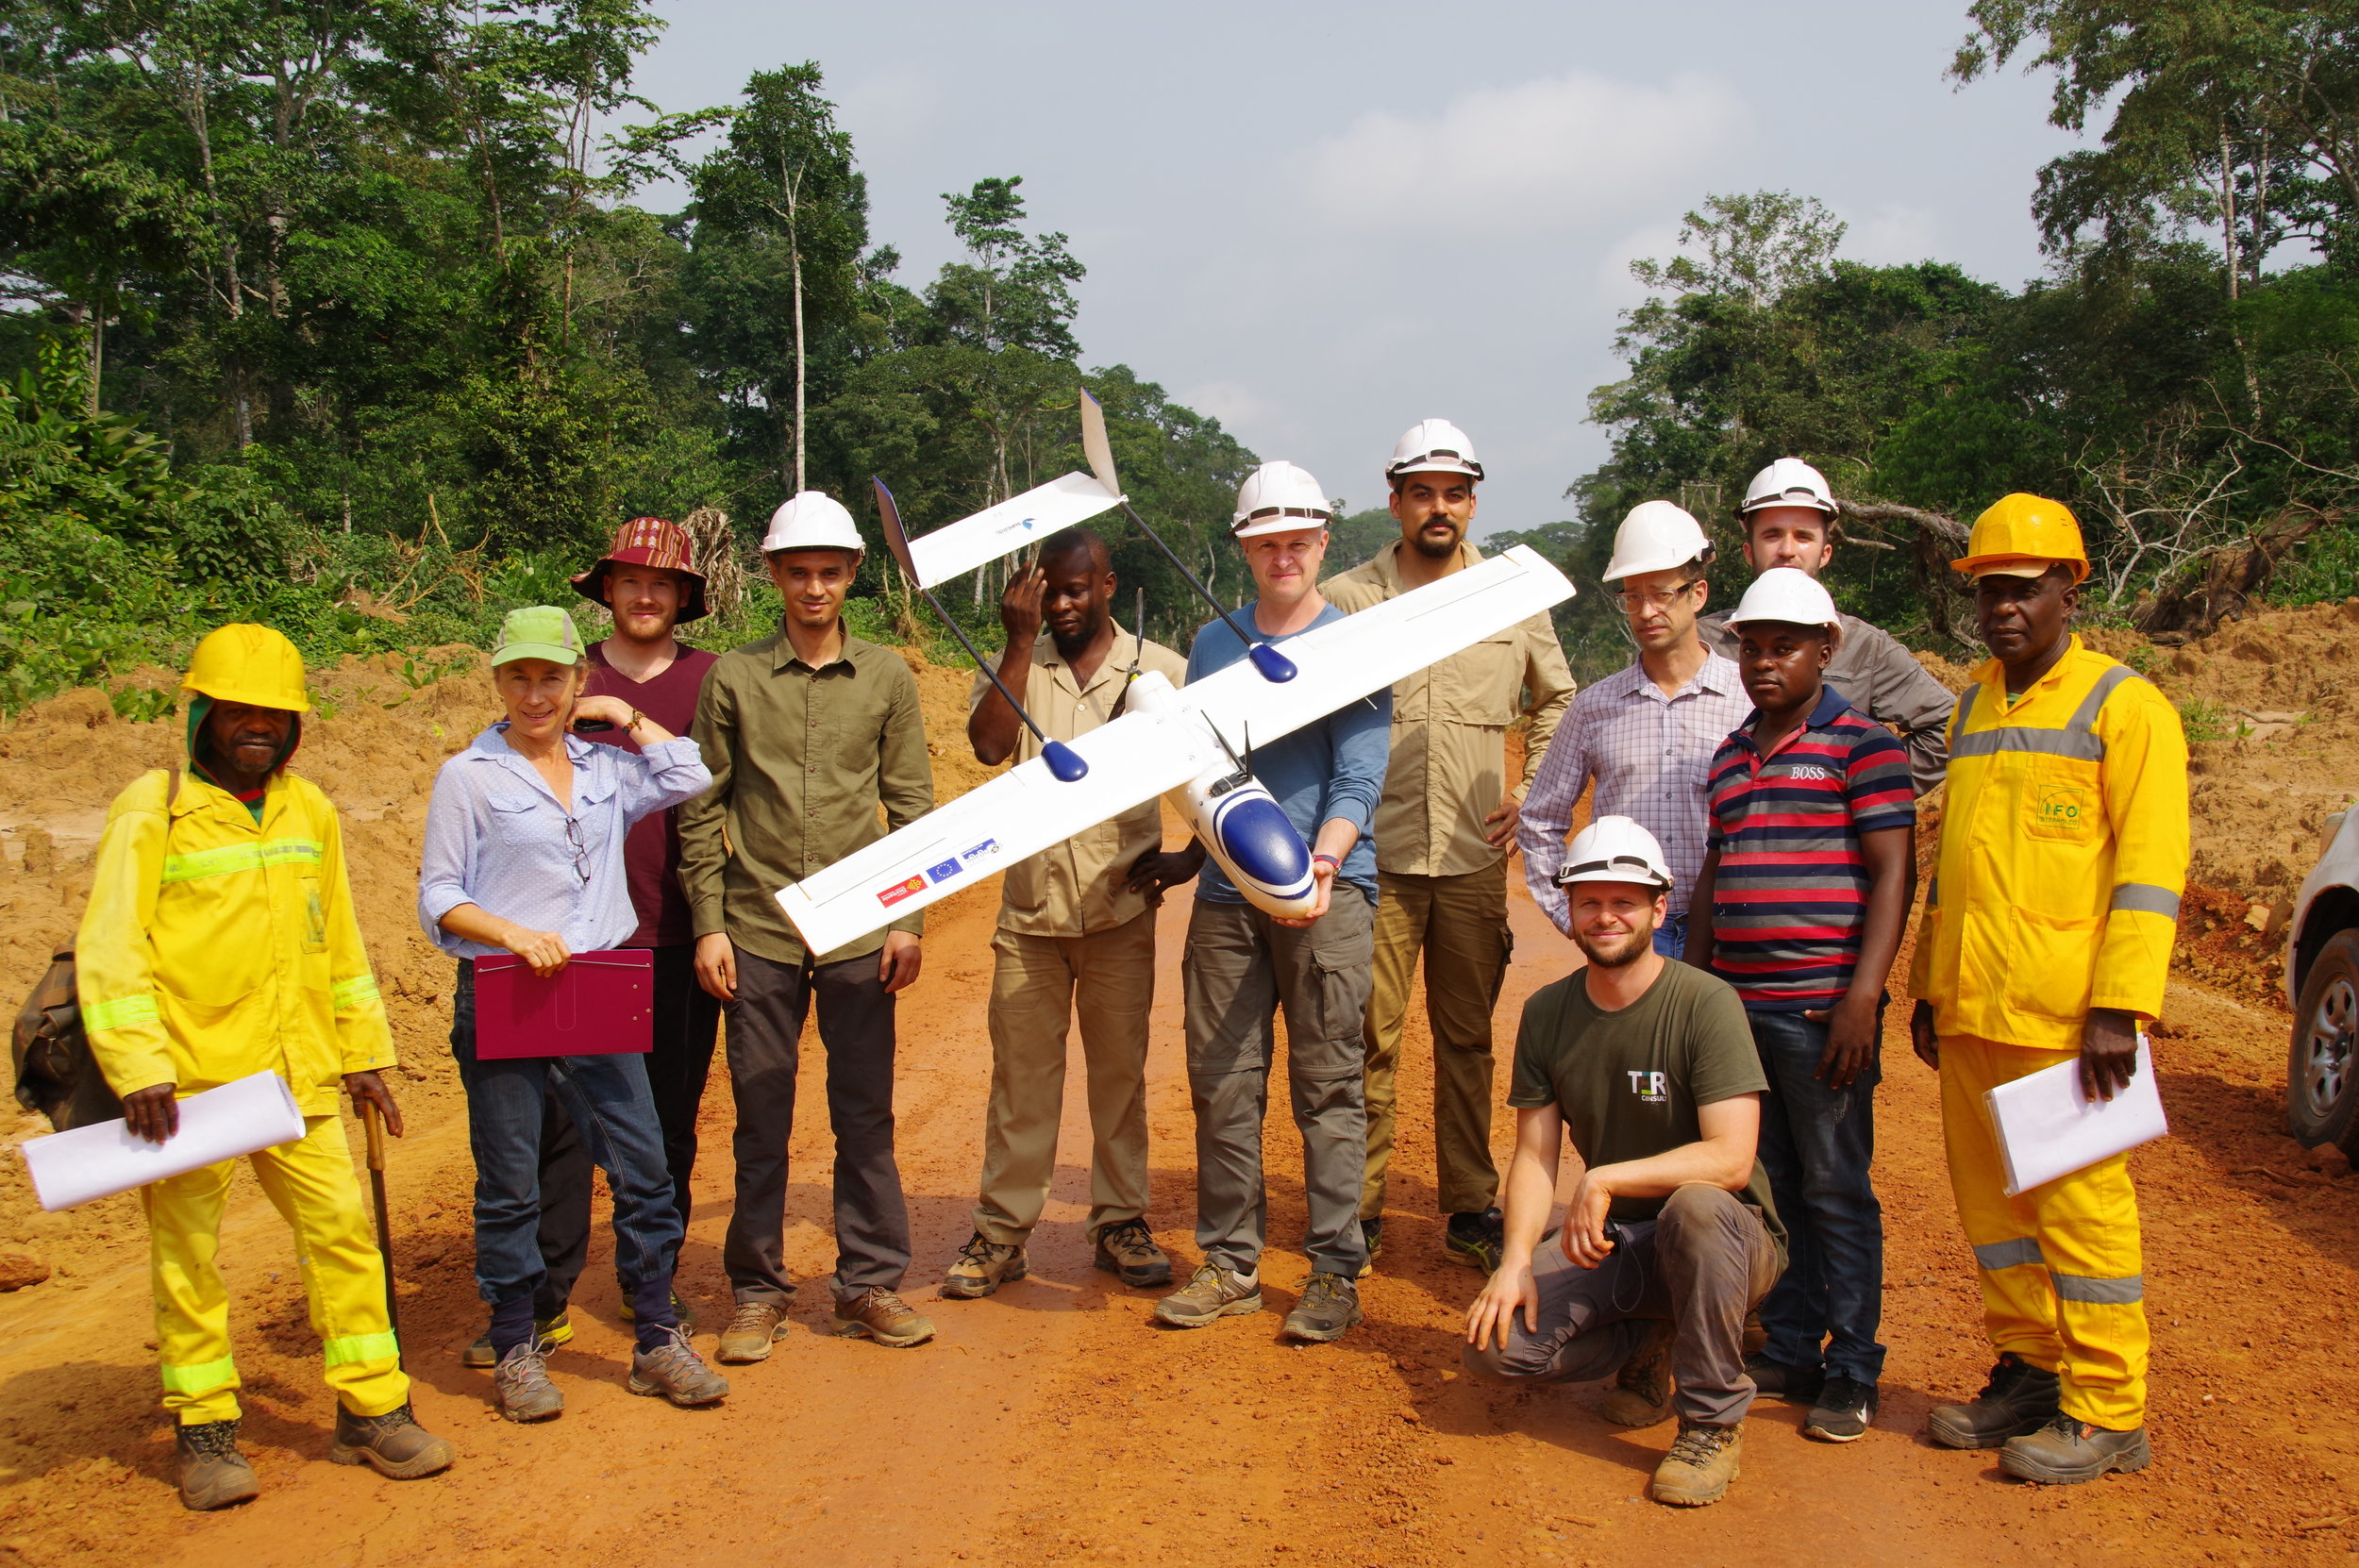 The IDROP/IDROC Consortium - Sunbirds has partnered up with key players in Data-Processing, Tropical Researches and Forestry to tackle the Digital Forestry Transformation. We aim to provide a turnkey solution enabling Forestry companies to use remote sensing with UAVs in order to demonstrate their involvement in responsible forest management while optimizing their daily operations. Drone technology allows unmatched accuracy regarding the monitoring of forestry environmental impact. It provides a global understanding of the potential volume of commercial species in the next Management Units. Those data are critical and game changing information to take the right strategical decisions.